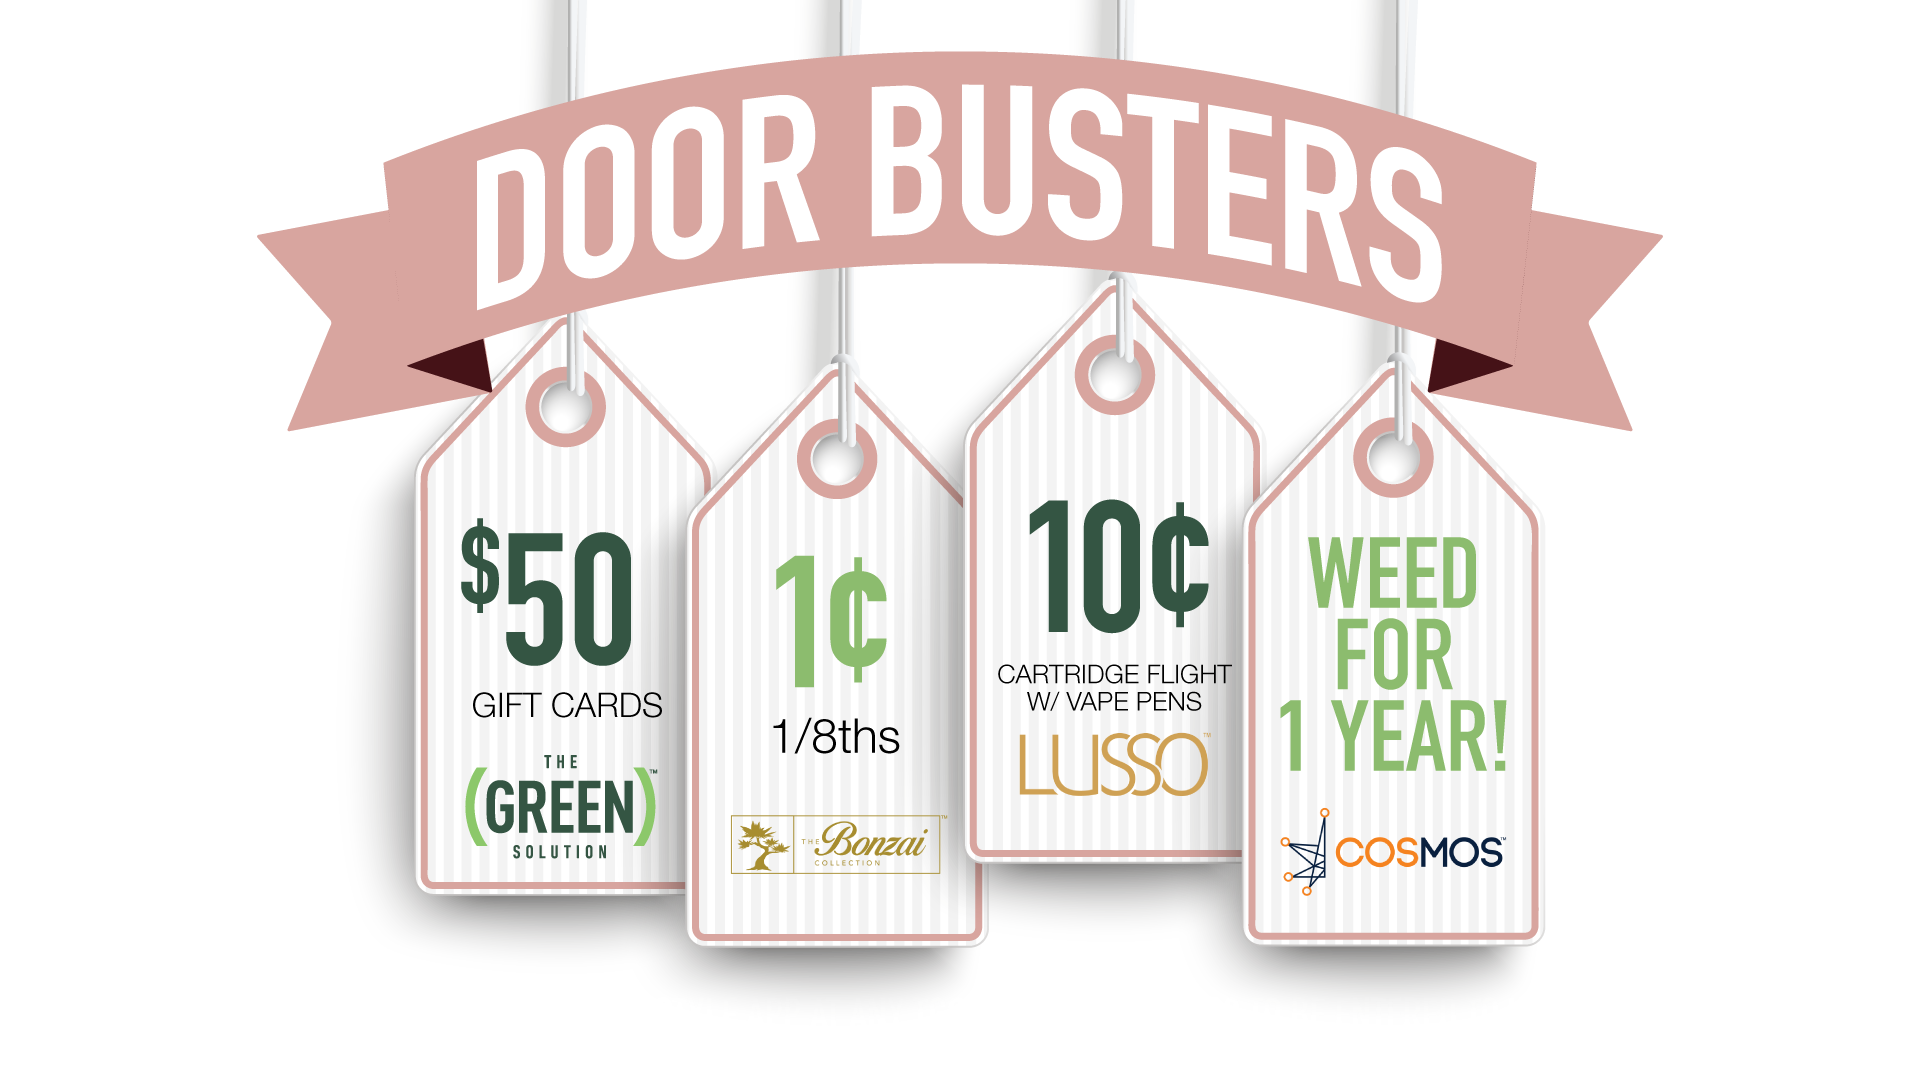 Black Friday Door Busters at The Green Solution